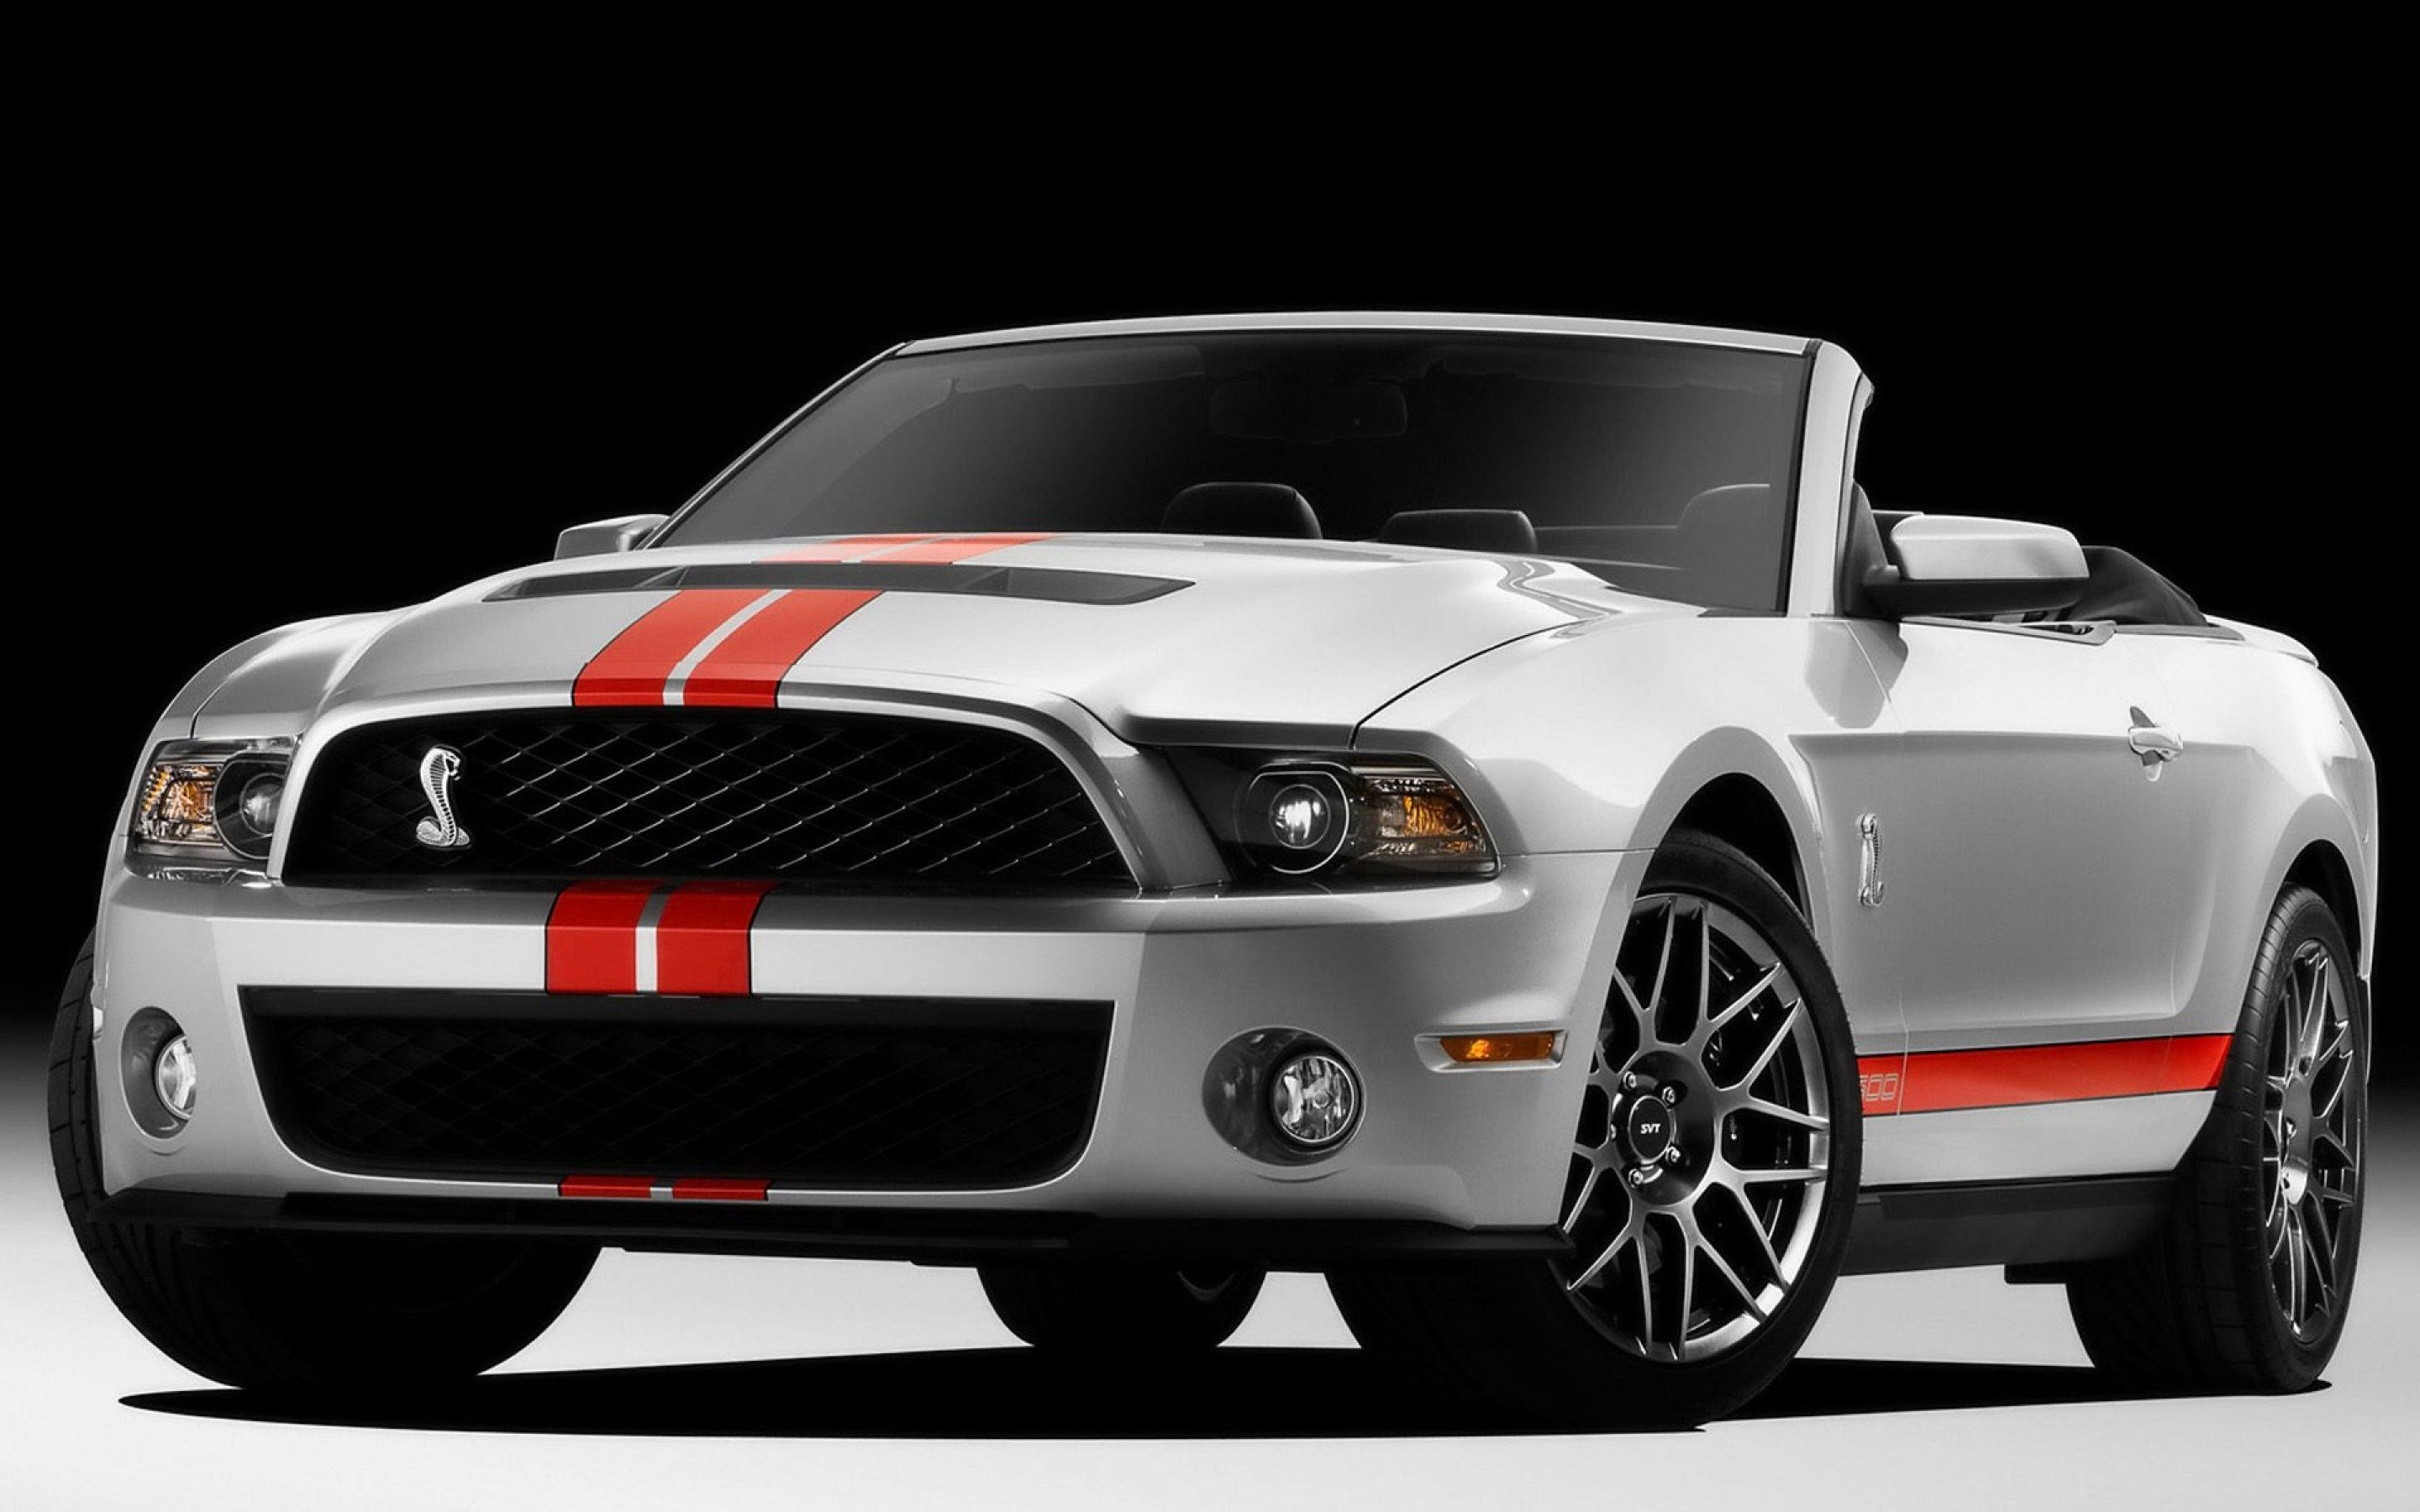 2015 ford mustang shelby gt500 price and release date http www autobaltika com 2015 ford mustang shelby gt500 price and release date html